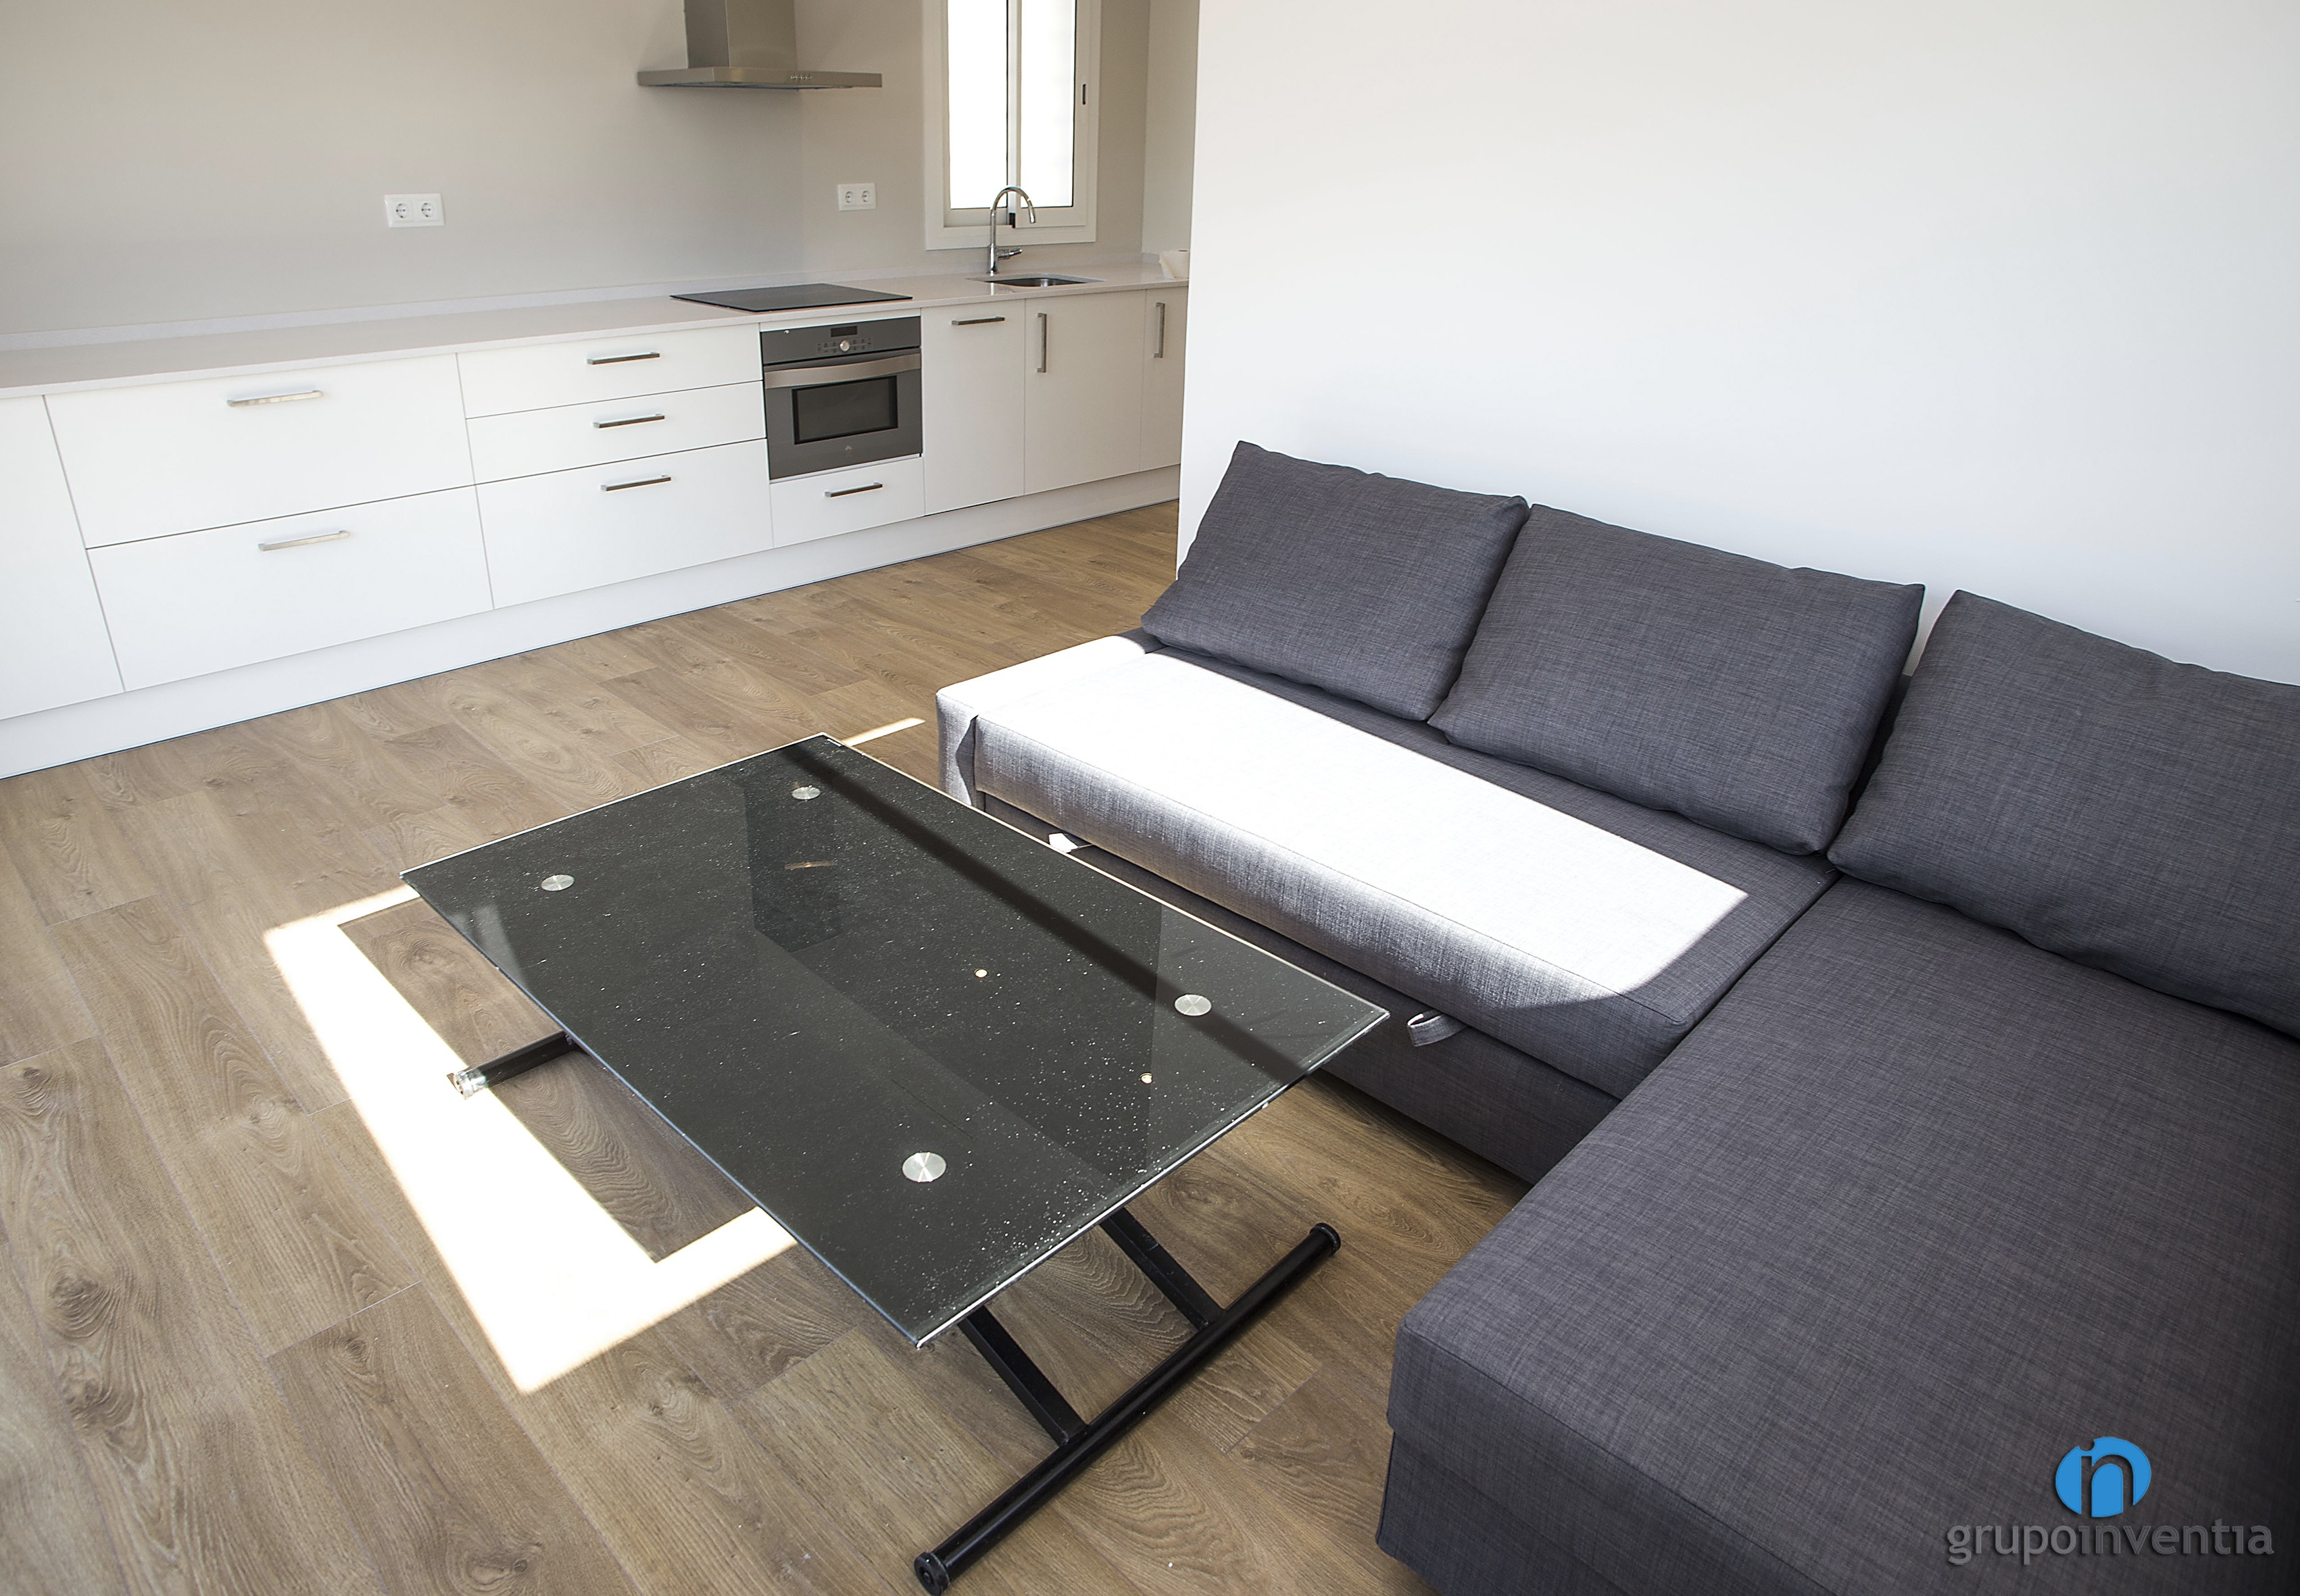 Muebles sal n grupo inventia for Muebles castelldefels